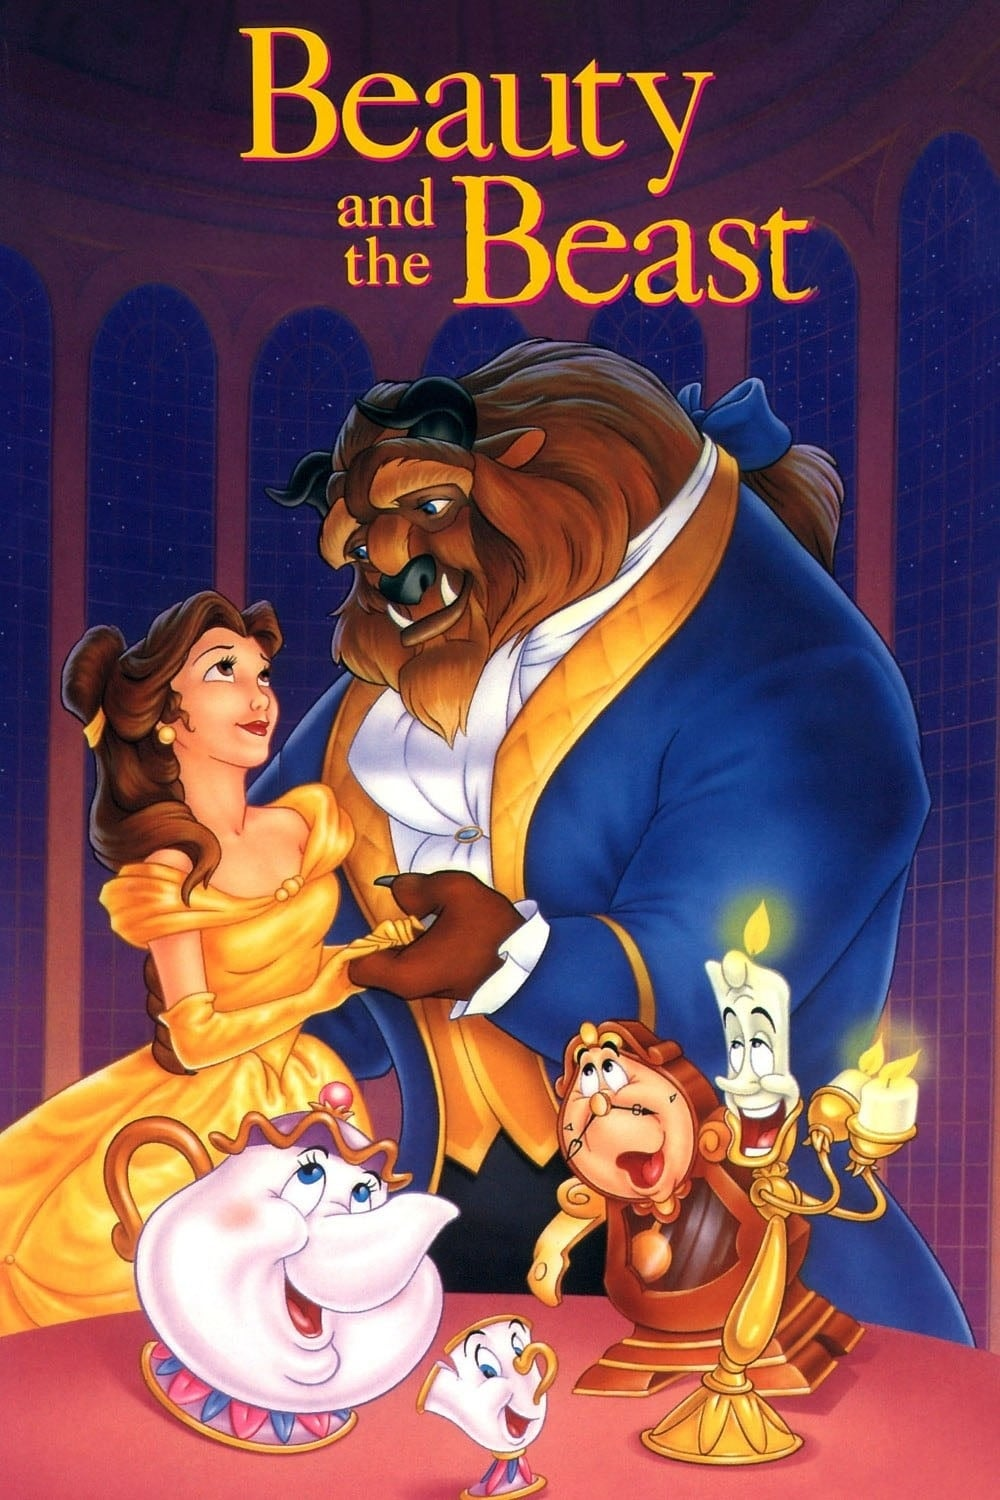 Beauty and the Beast 4DX